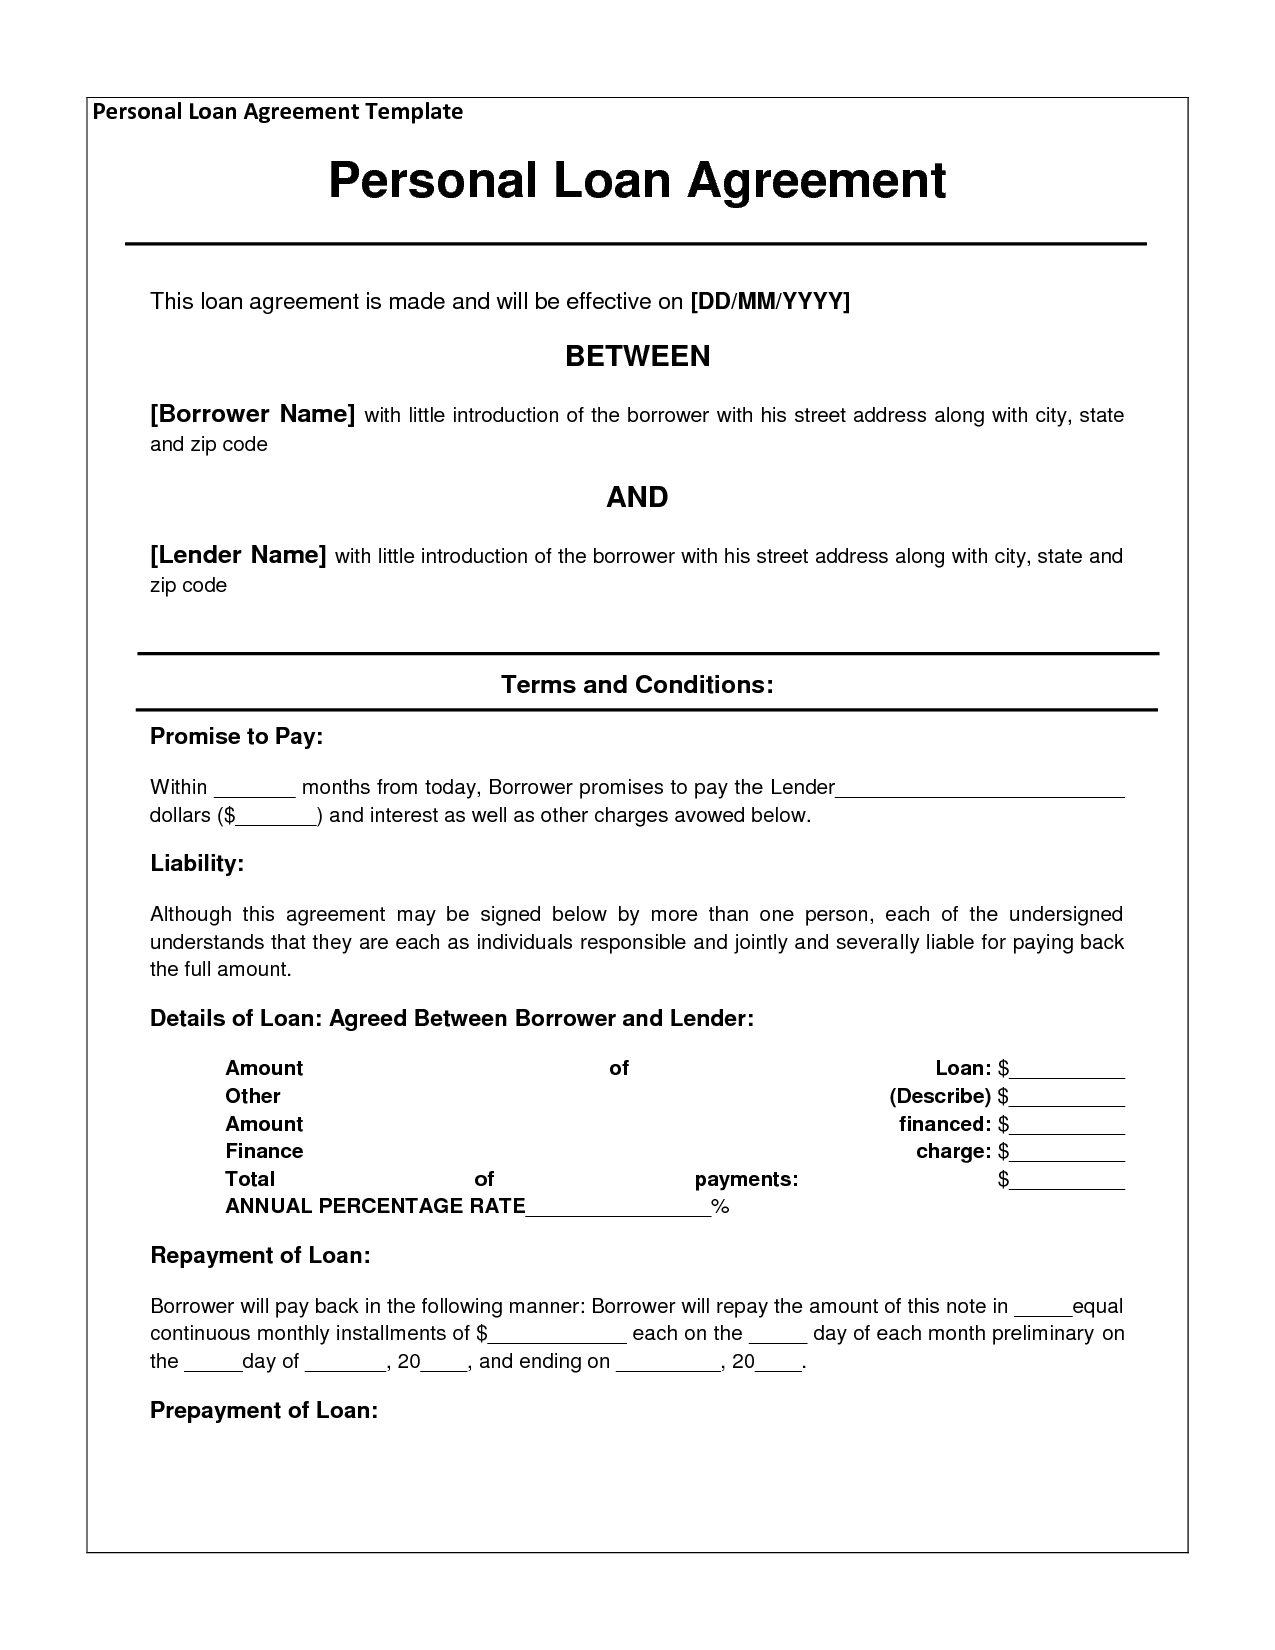 Free personal loan agreement form template 1000 approved in 2 free personal loan agreement form template 1000 approved in 2 private loan agreement template free maxwellsz